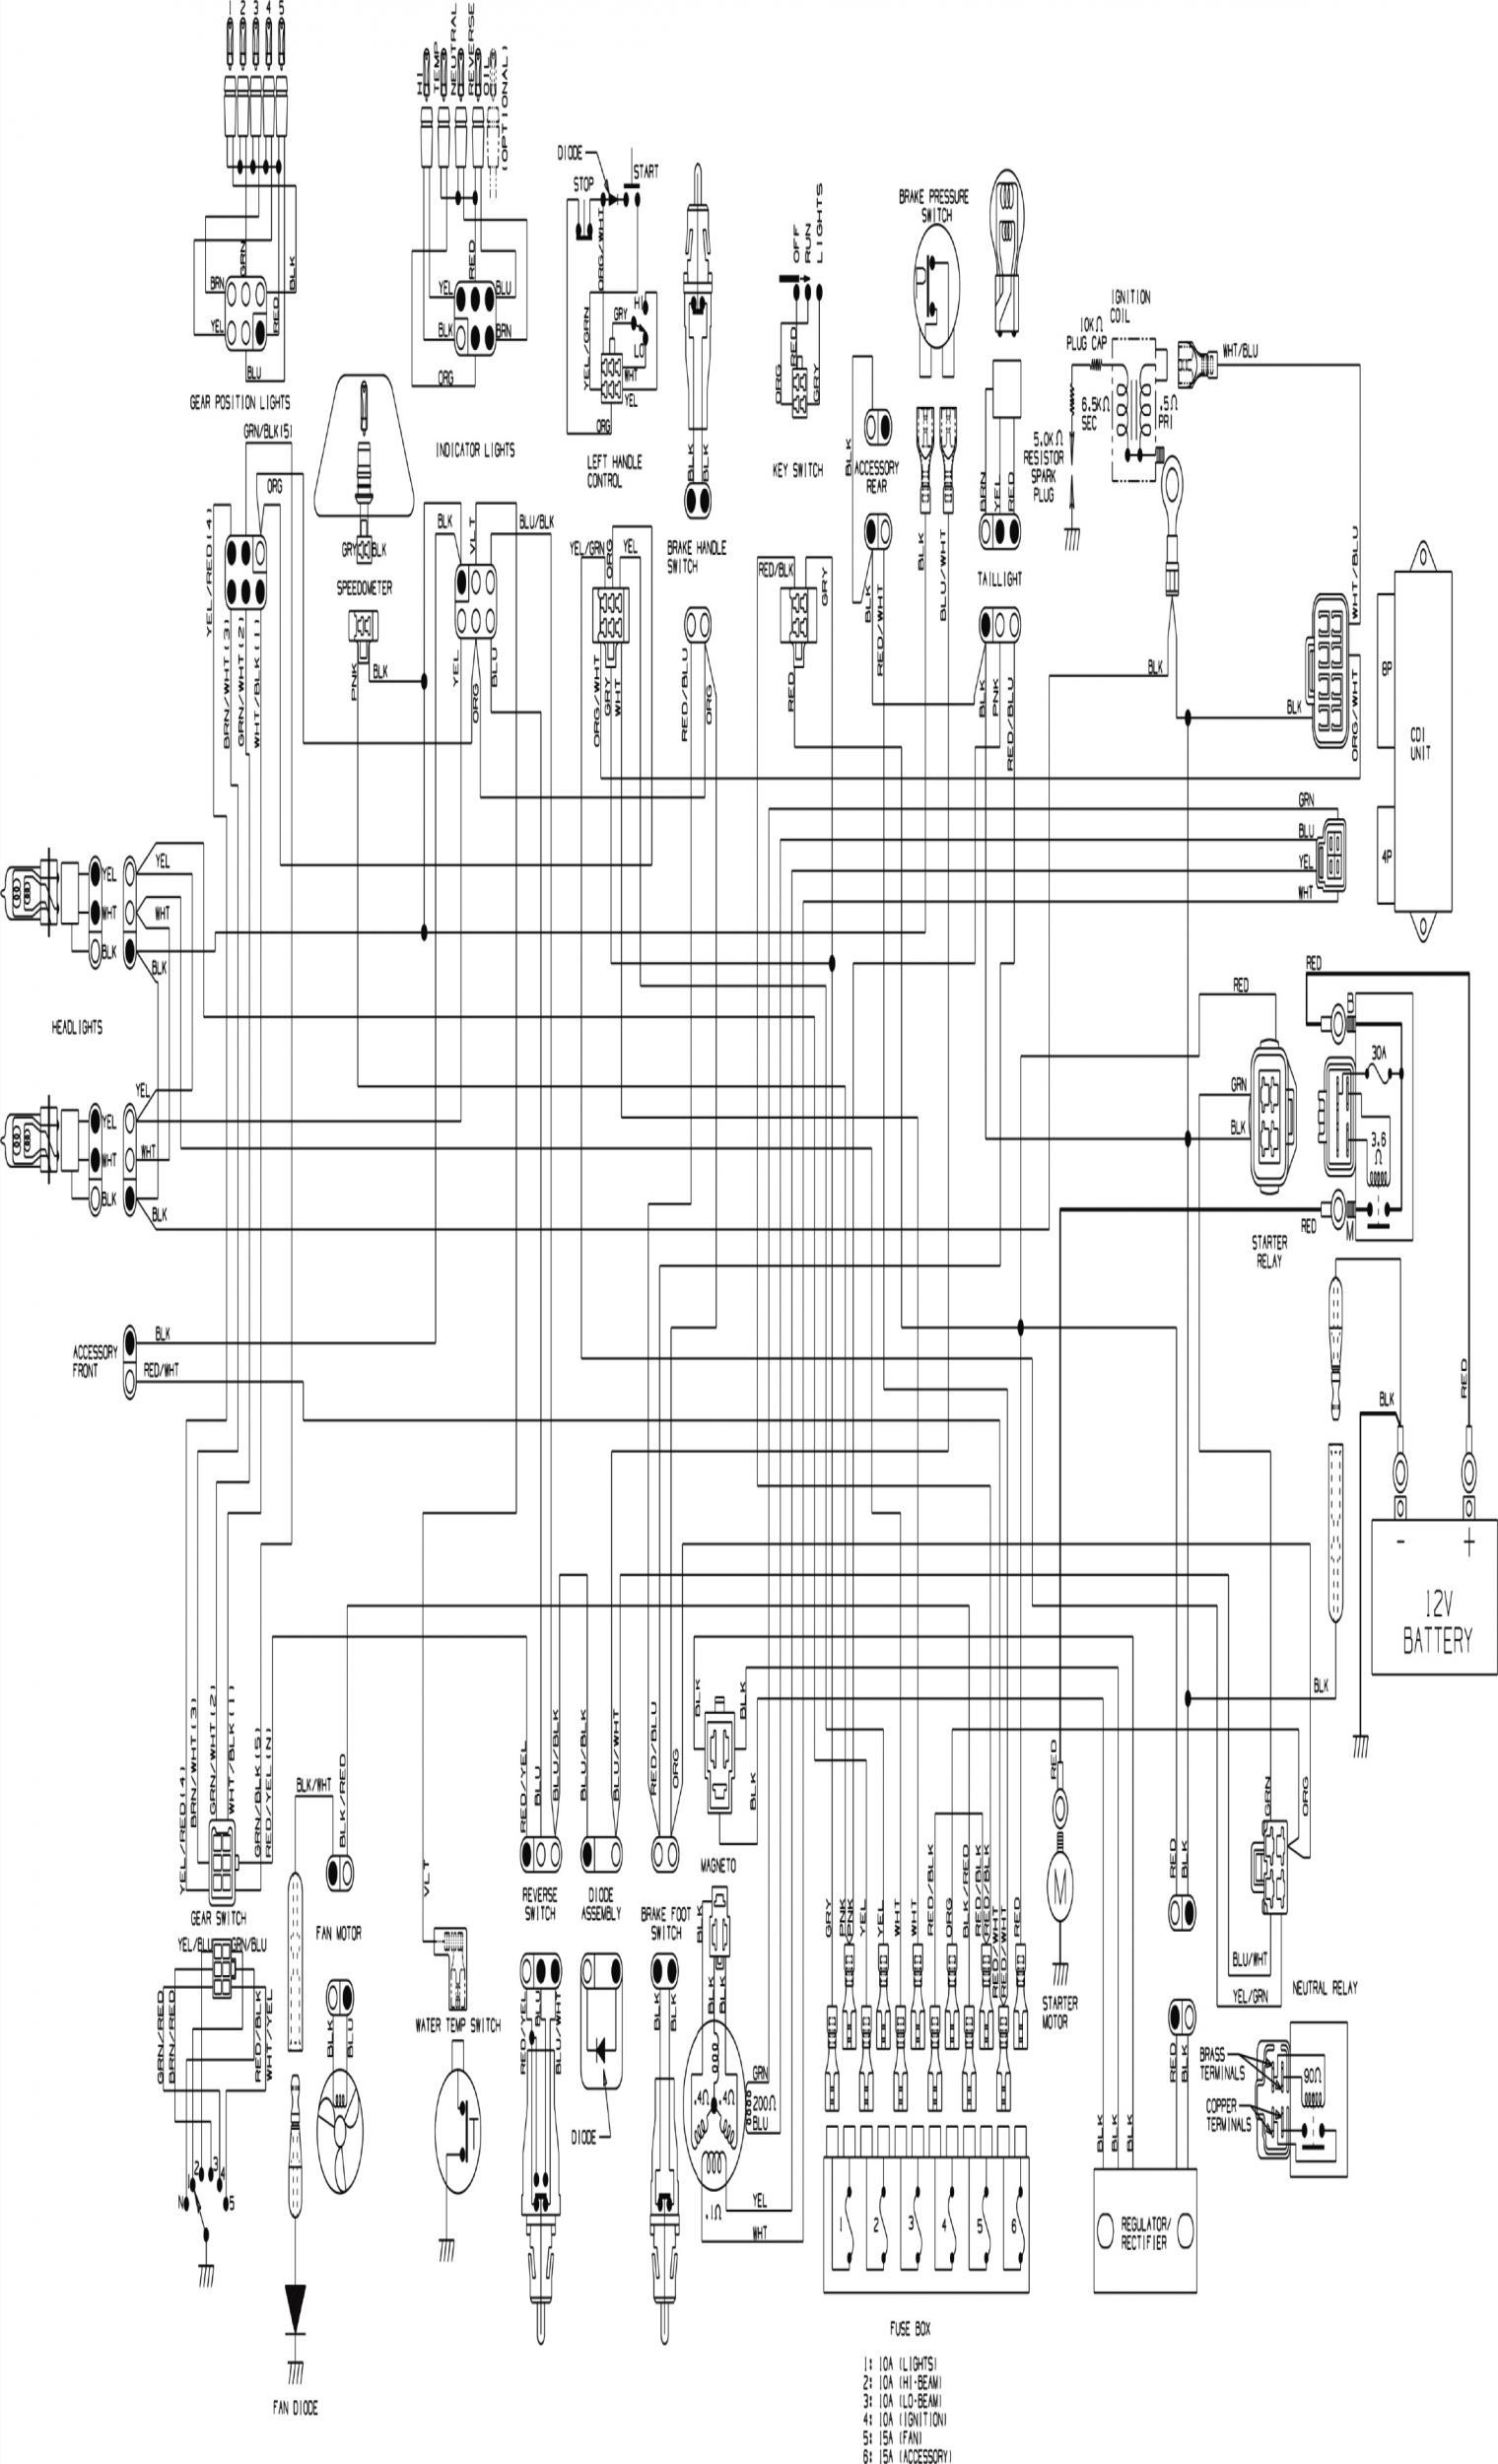 2000 arctic cat 400 wiring diagram my wallpaper sx 6382  yamaha rx series snowmobile wiring diagram schematic wiring  yamaha rx series snowmobile wiring